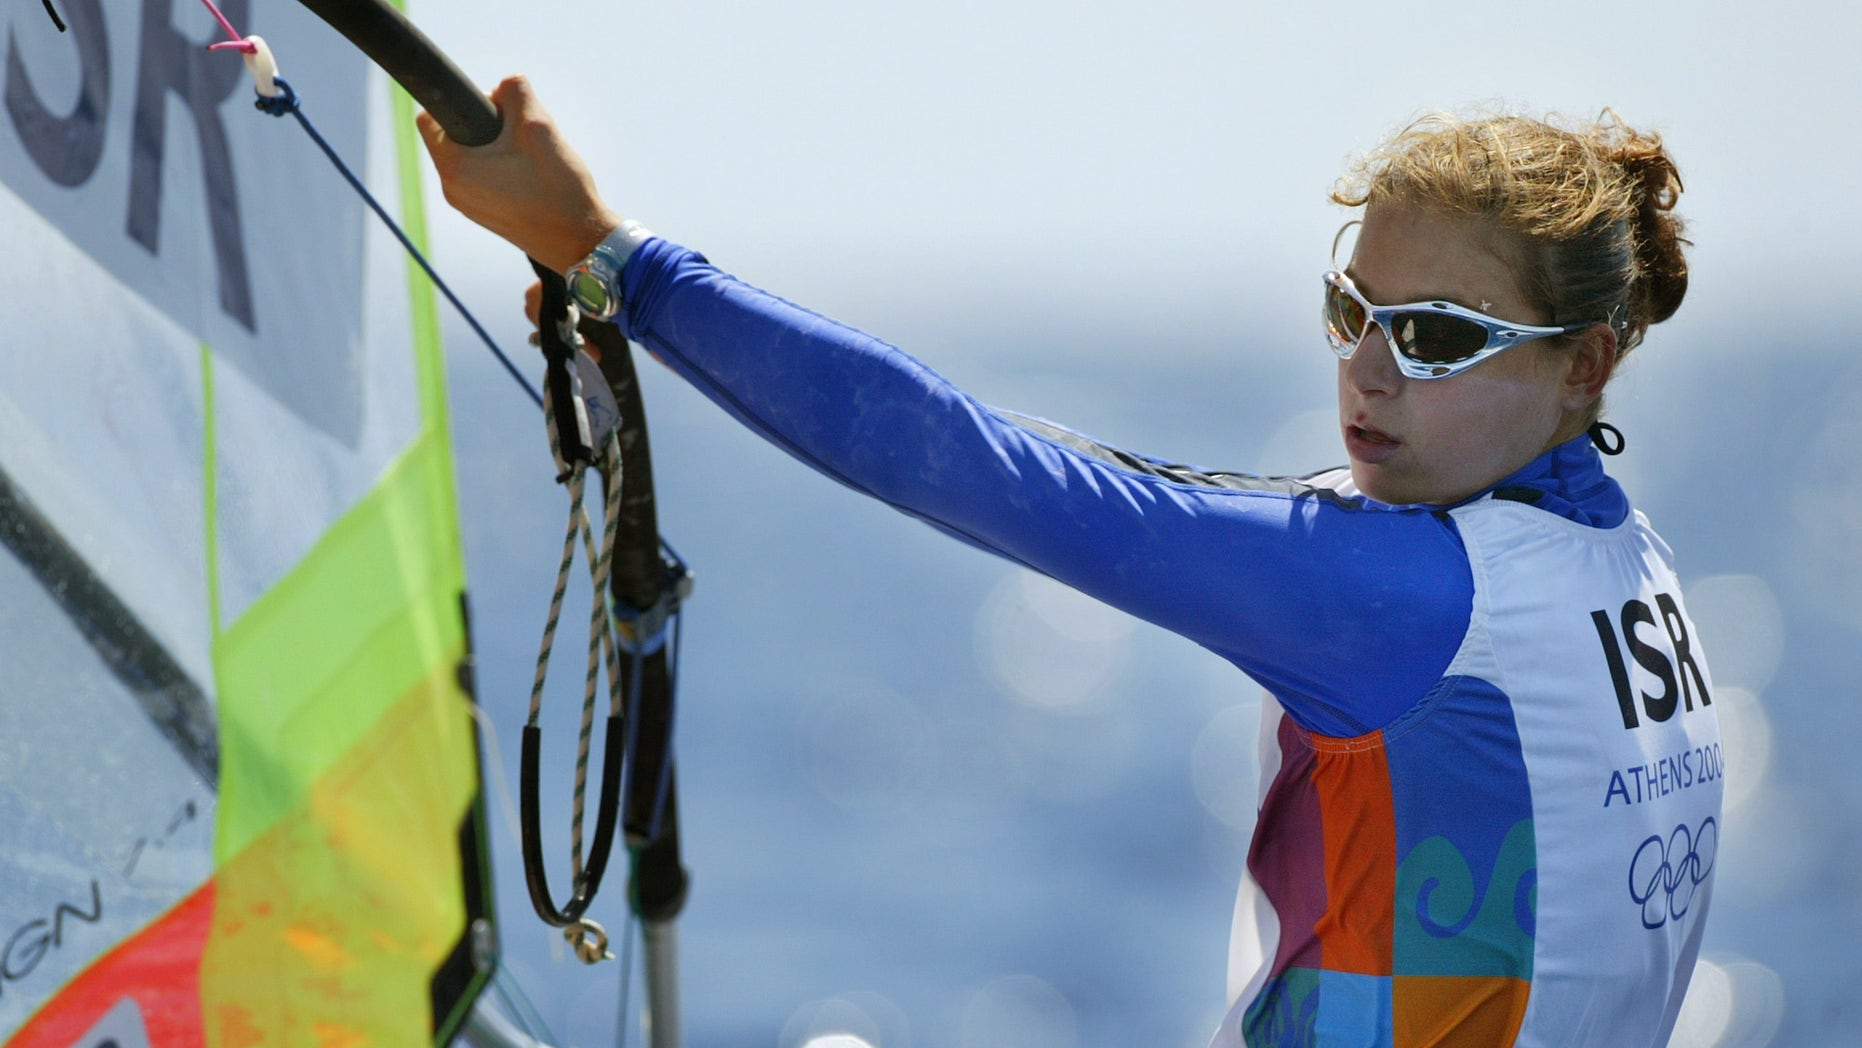 Aug. 23, 2004: In this file photo Israel's Lee Korzits sails during race 10 of the women's Mistral windsurfer sailing event at the 2004 Olympic Games in Athens, Greece.